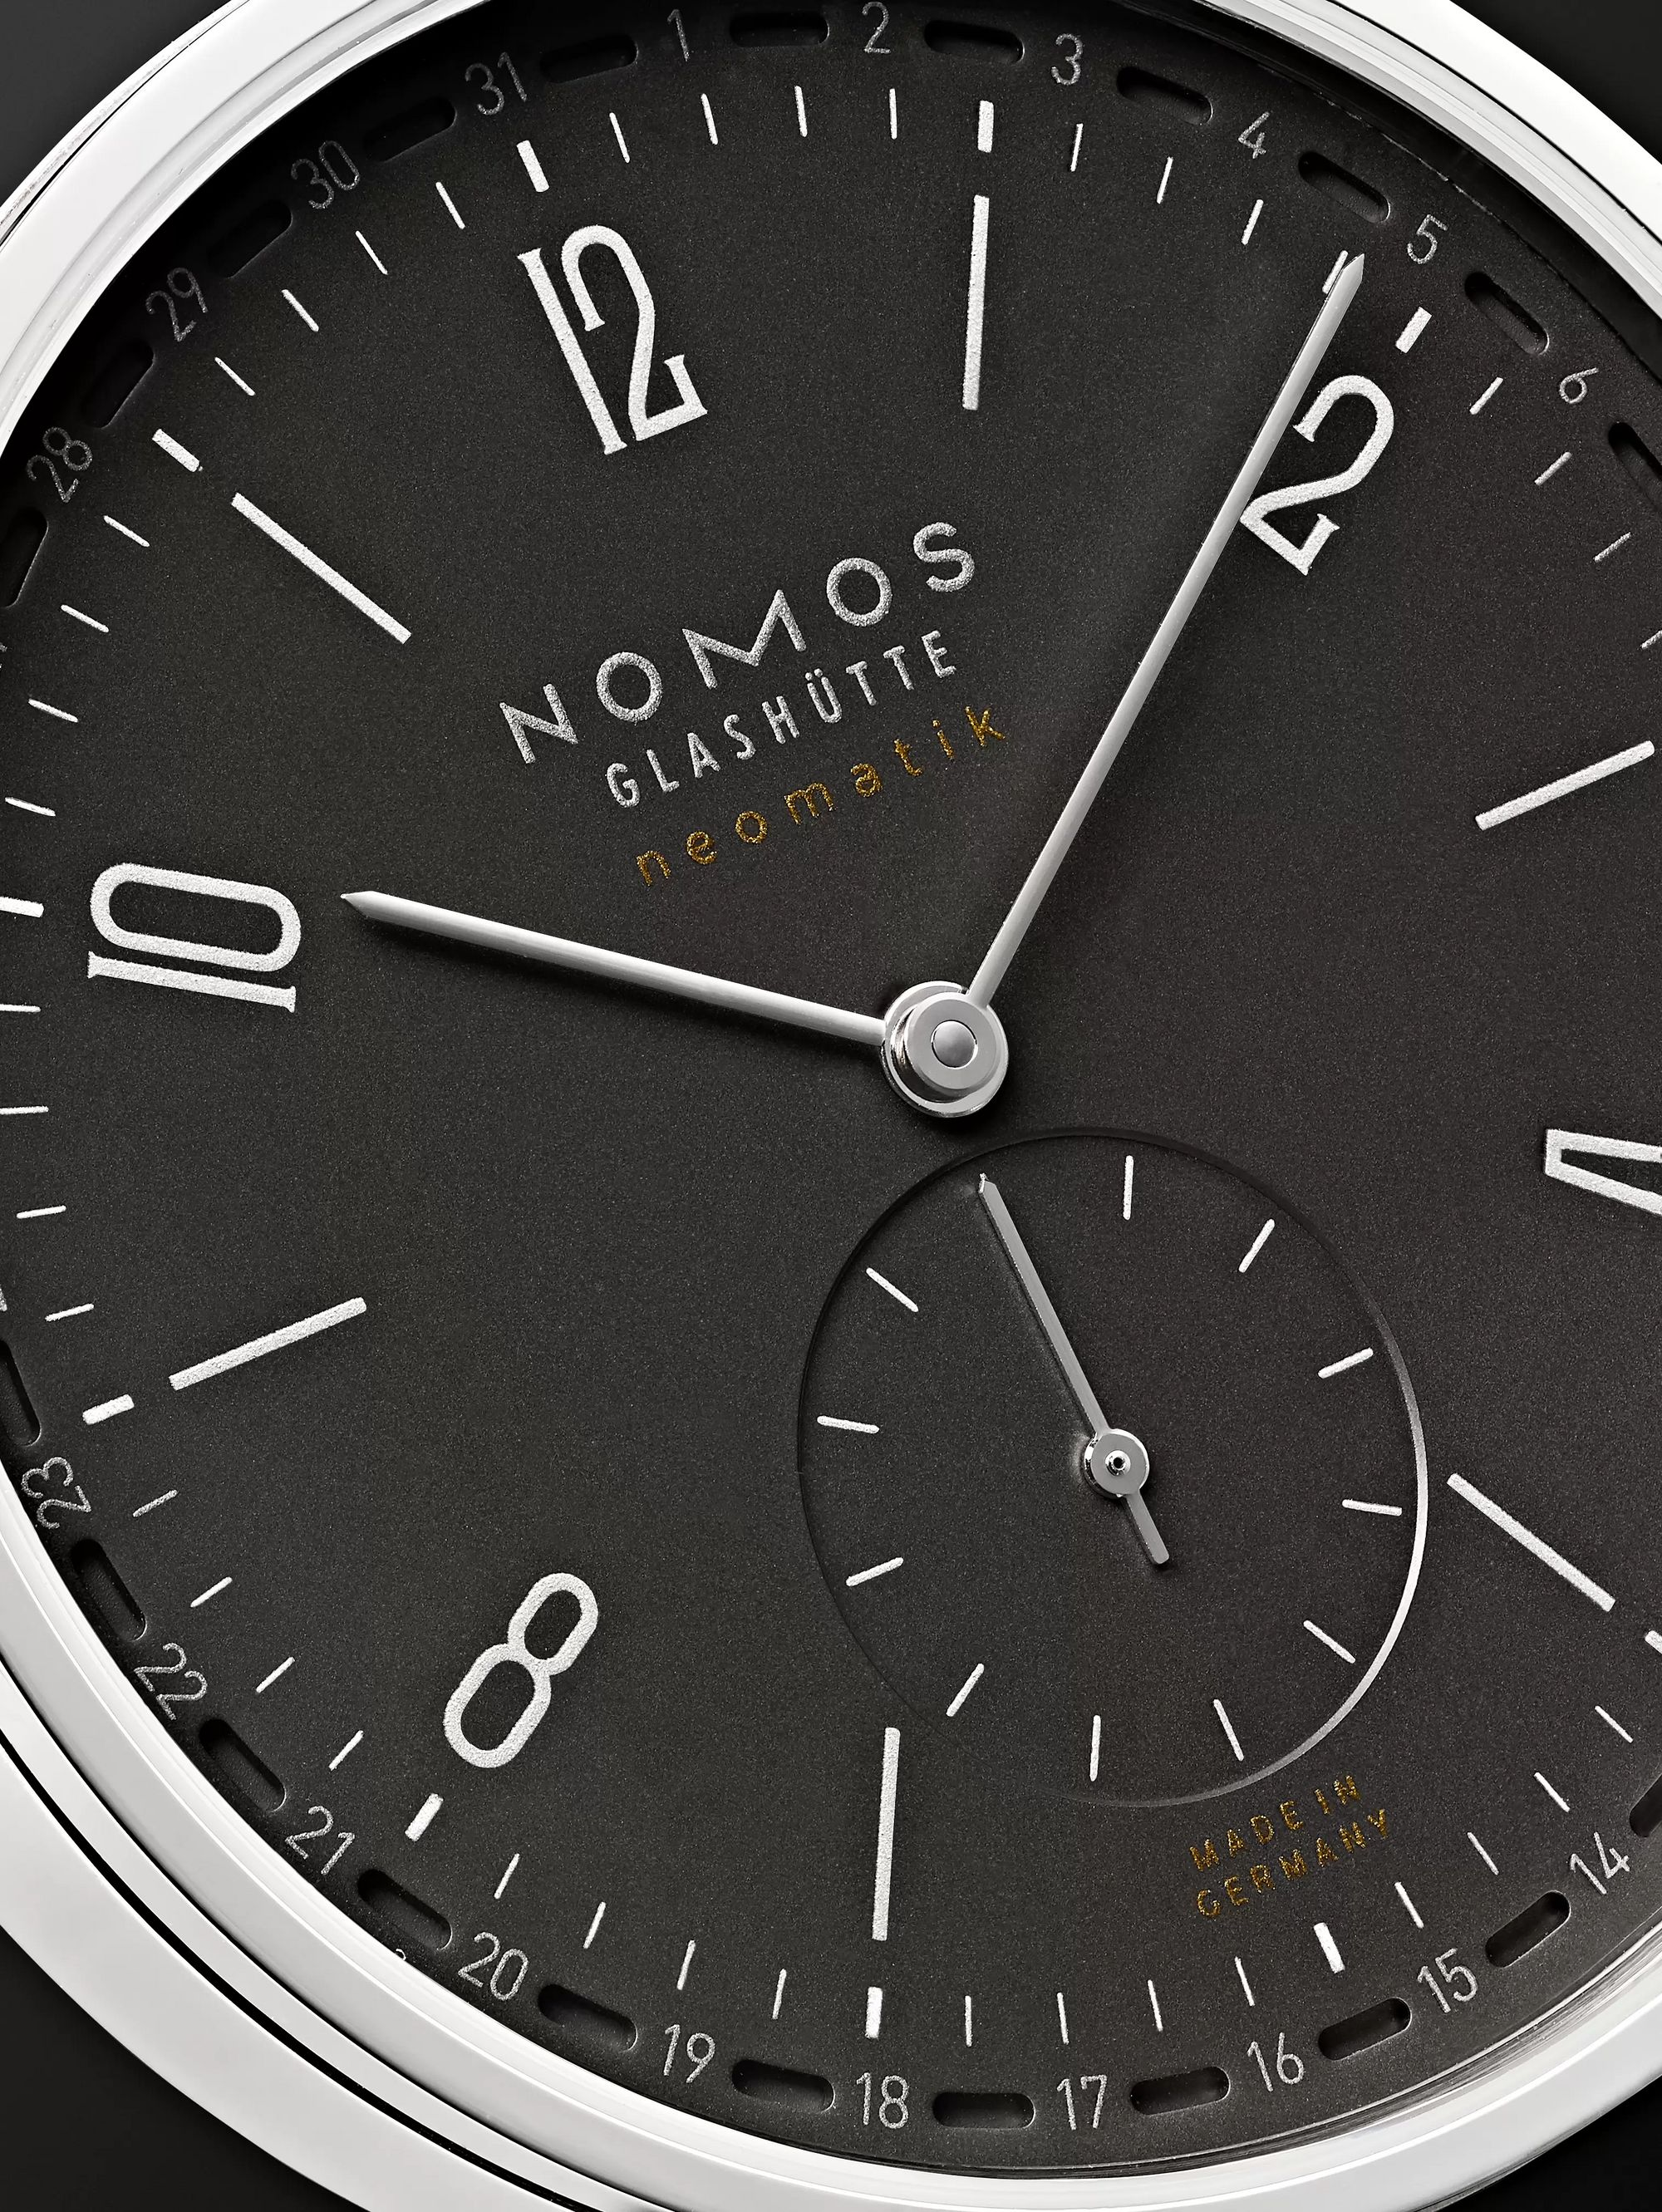 NOMOS Glashütte Tangente Neomatik Automatic 40.5mm Stainless Steel and Horween Cordovan Leather Watch, Ref. No. 181